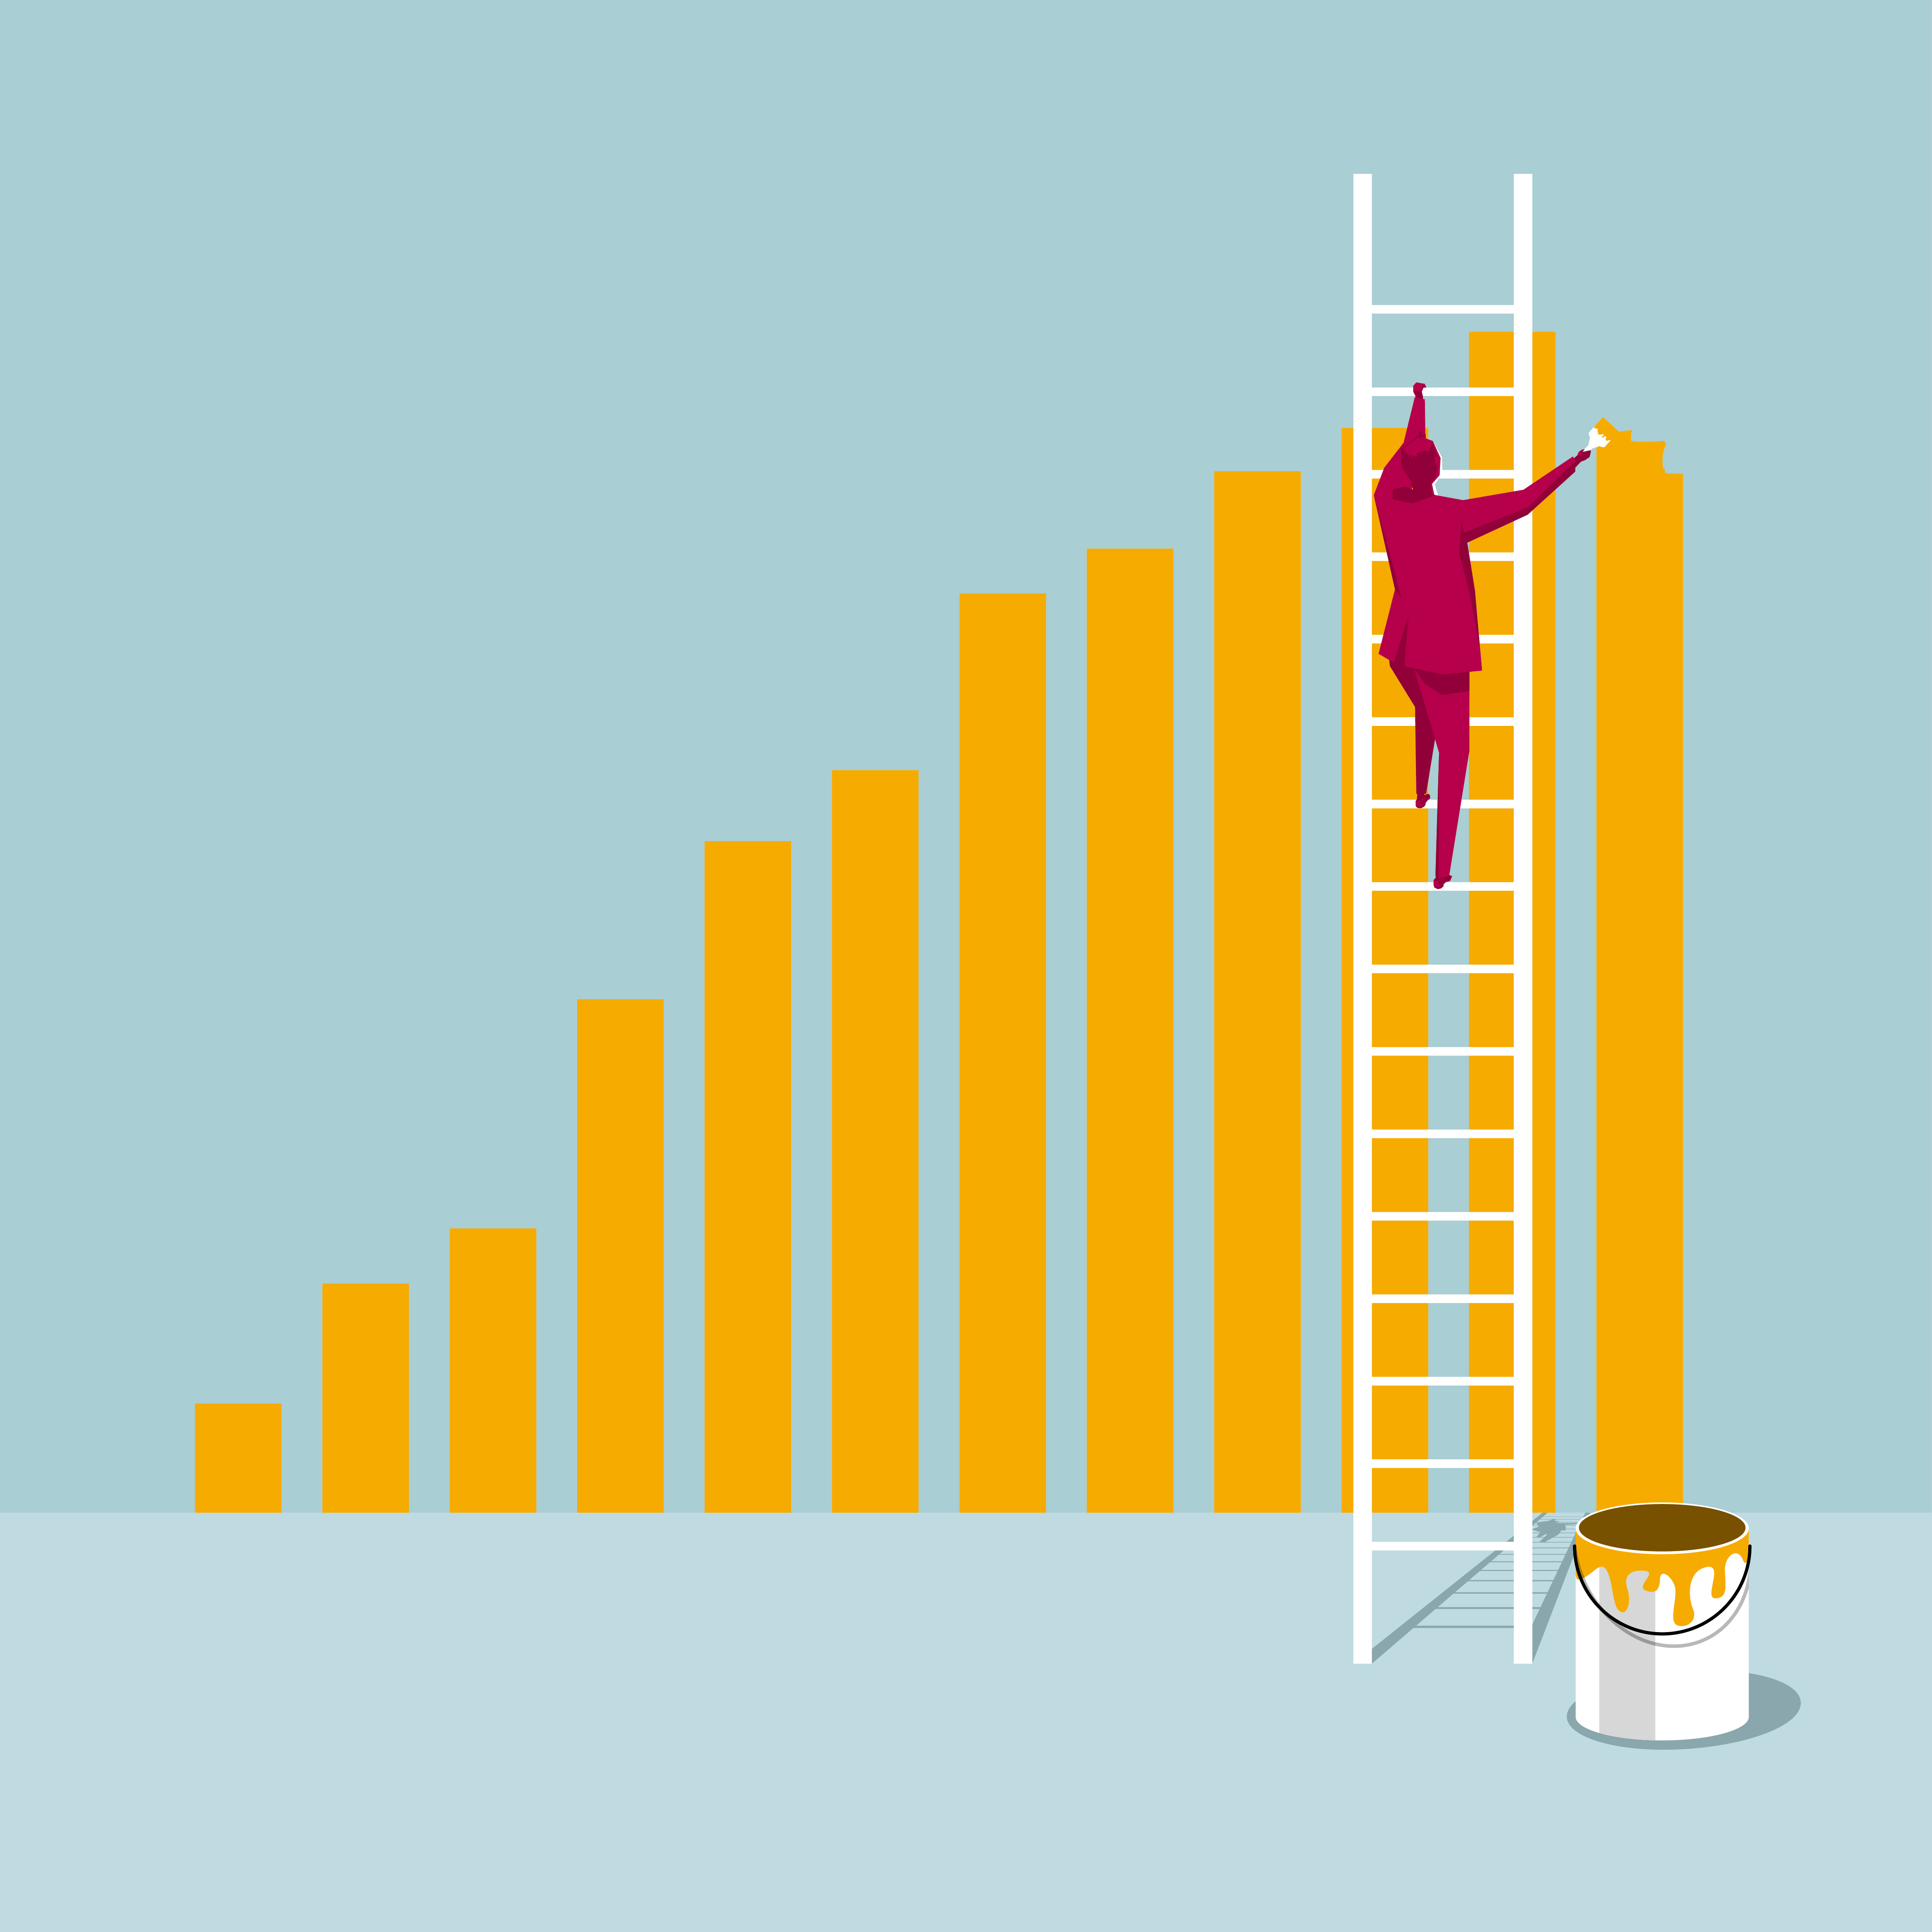 Human form on a ladder painting the bars of a chart